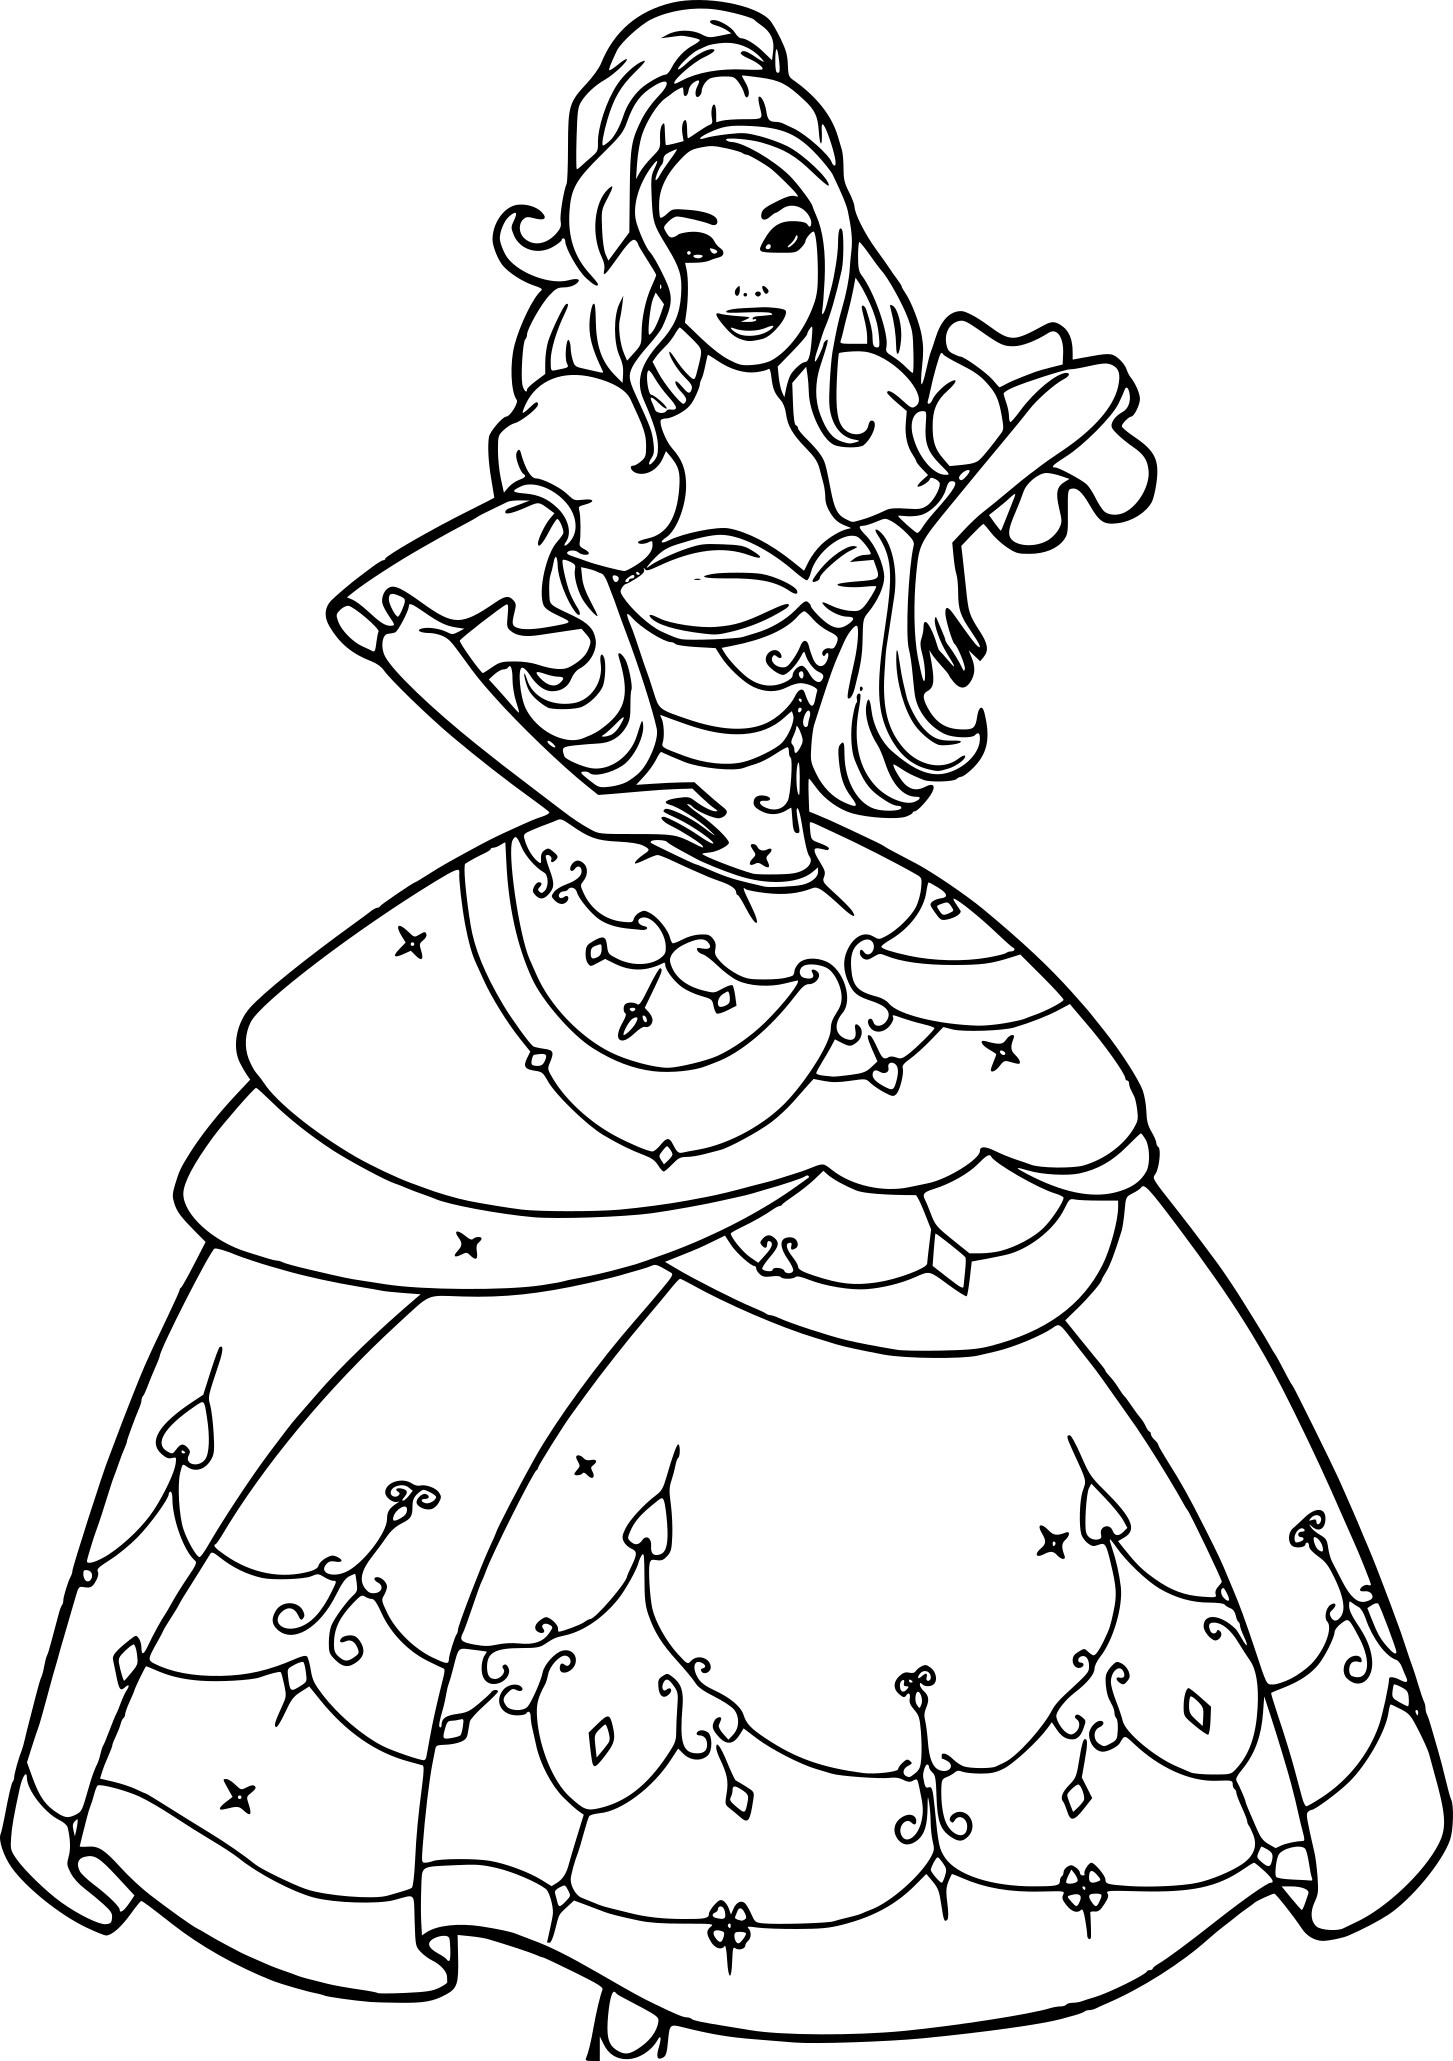 Beau dessin a imprimer princesse barbie - Coloriages princesse ...